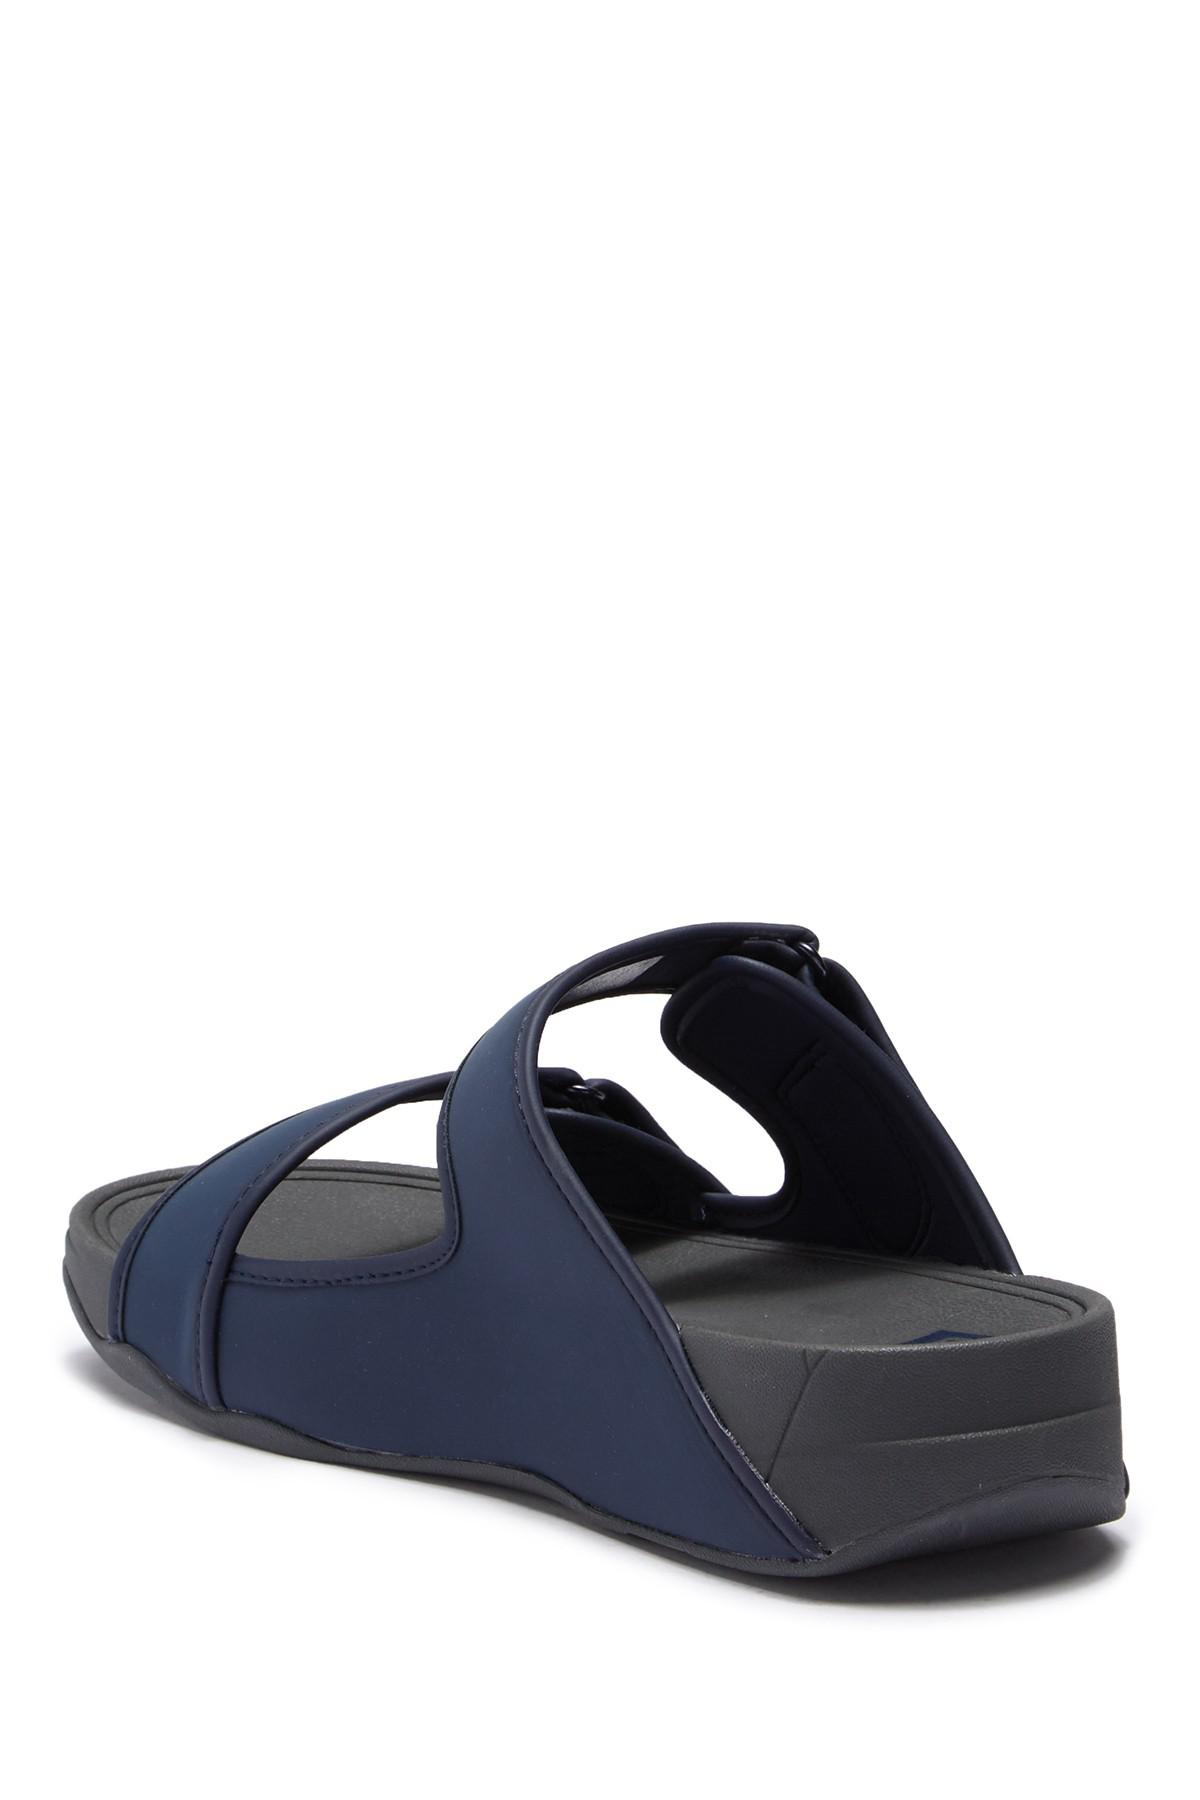 1d95d68a2cf7ba Lyst - Fitflop Sandals in Blue for Men - Save 51%